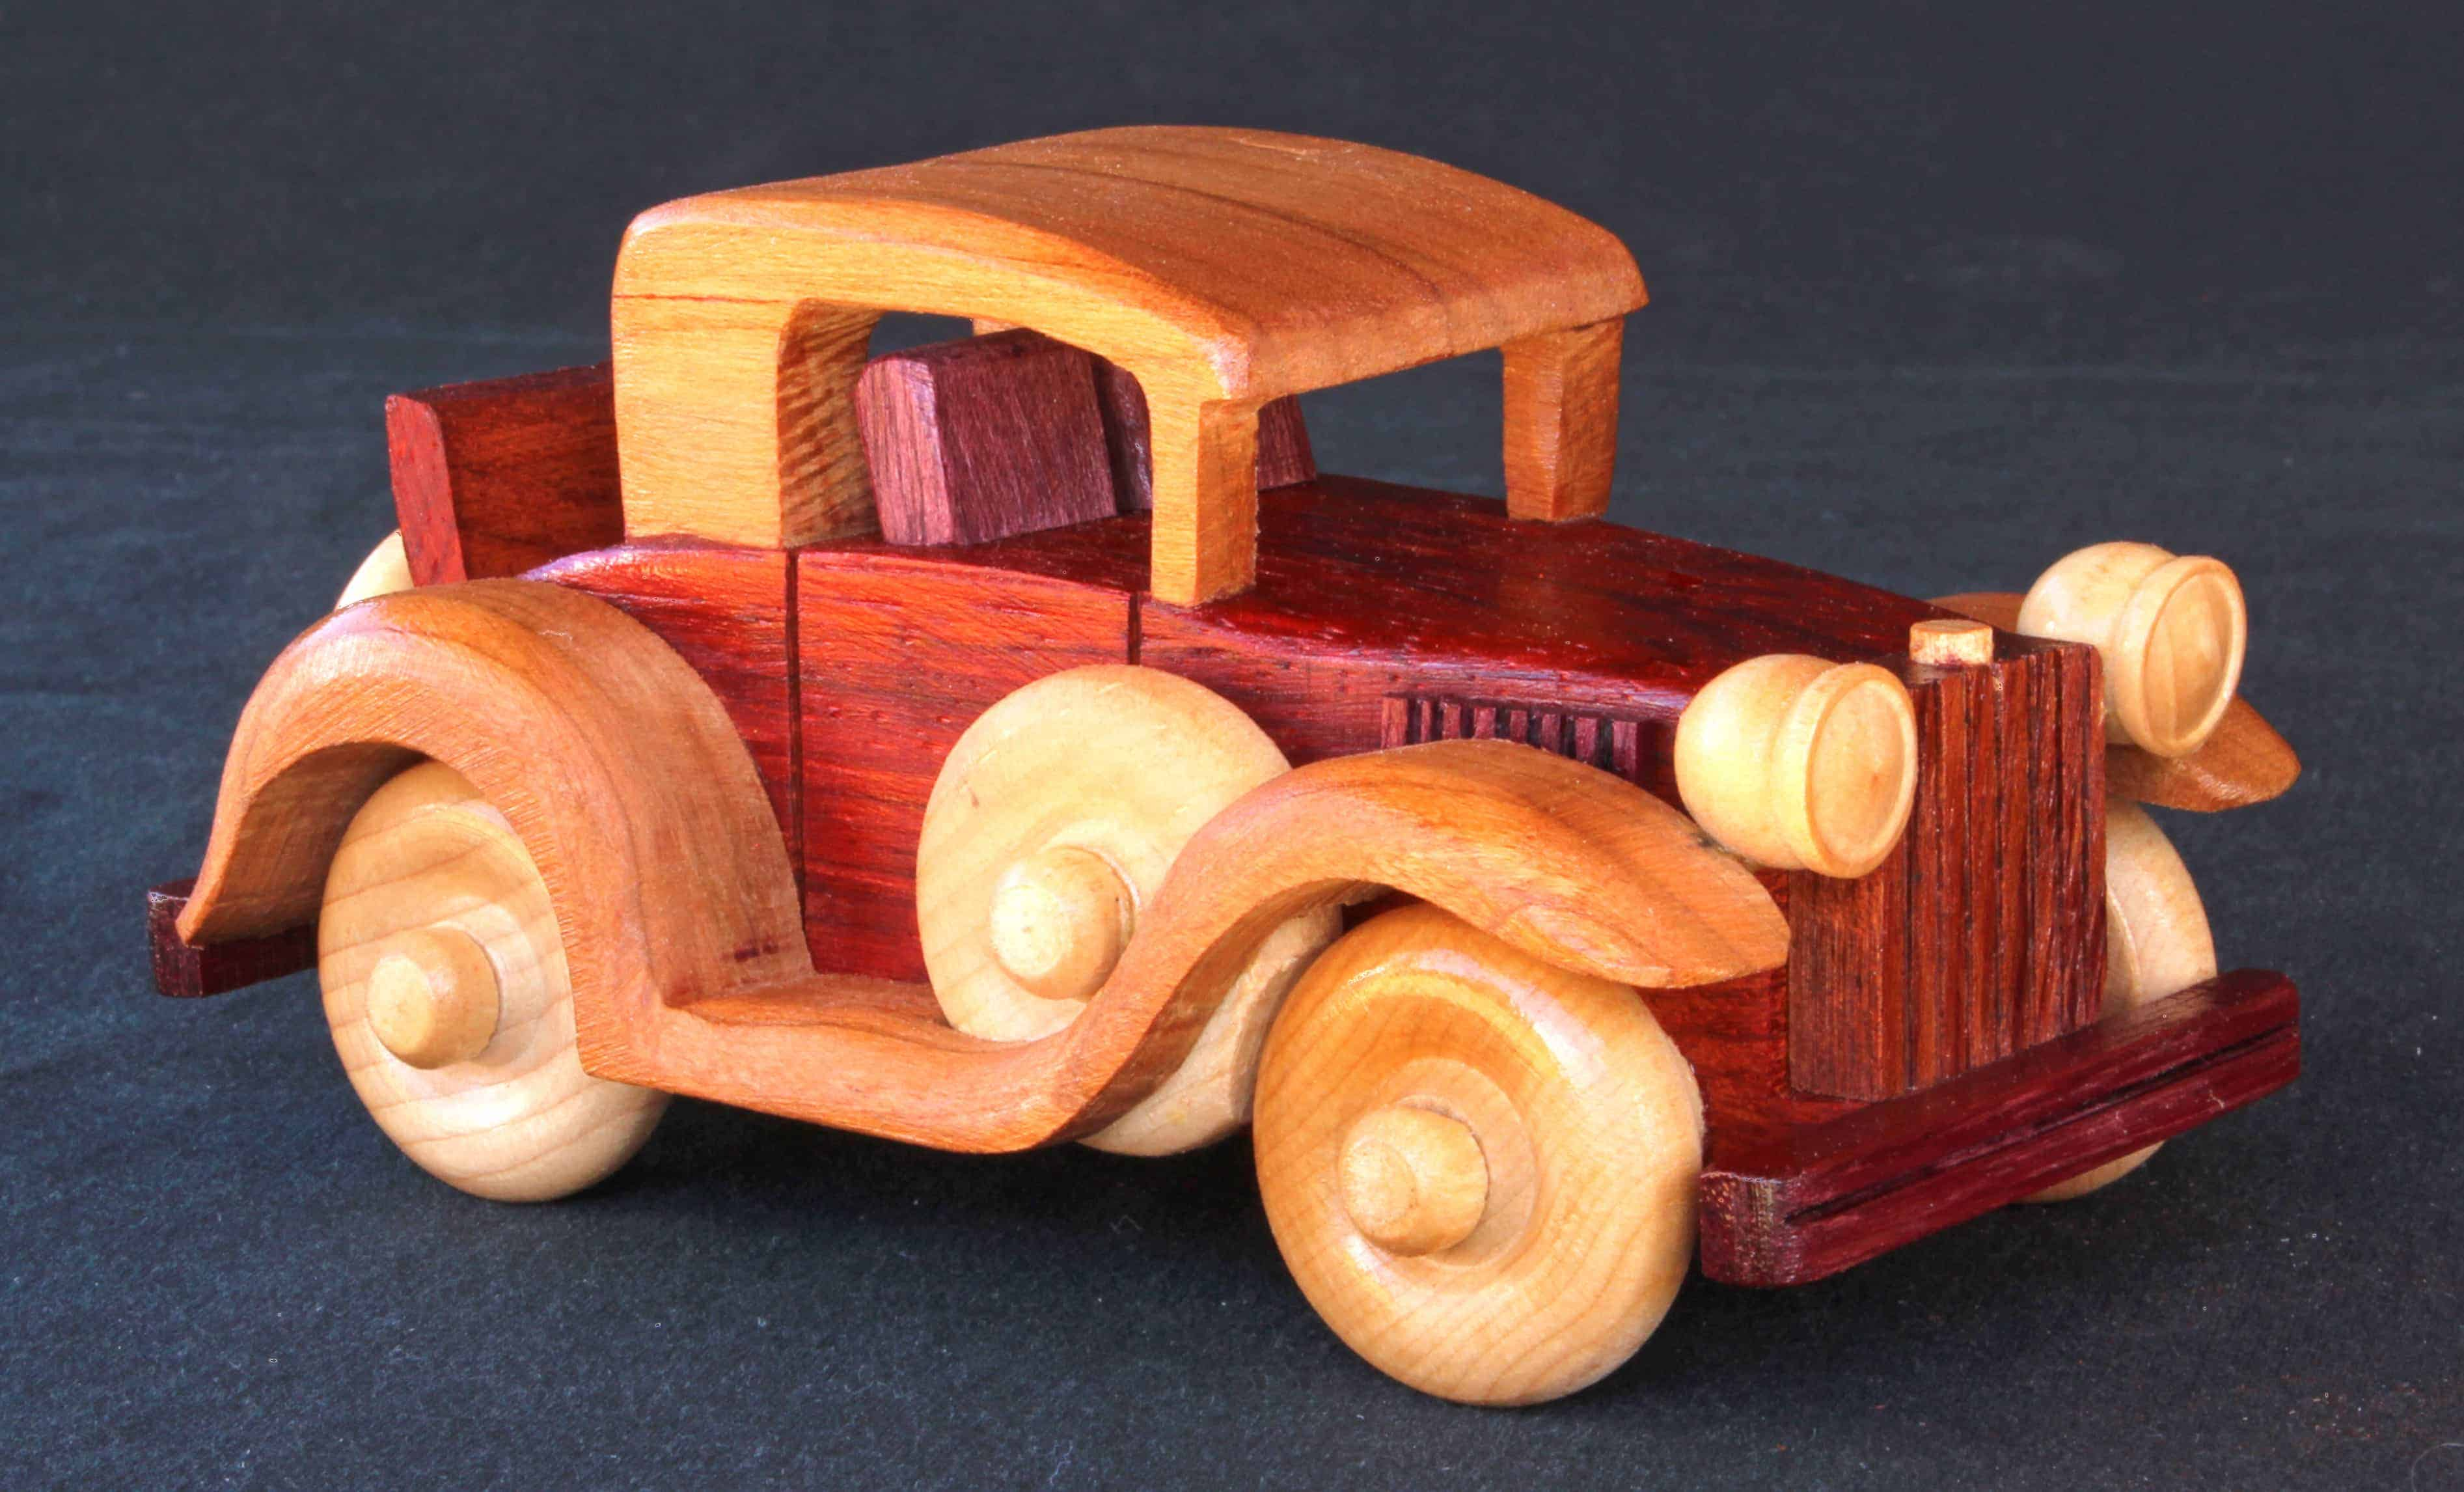 Woodworking plan for building a whole series of vehicles